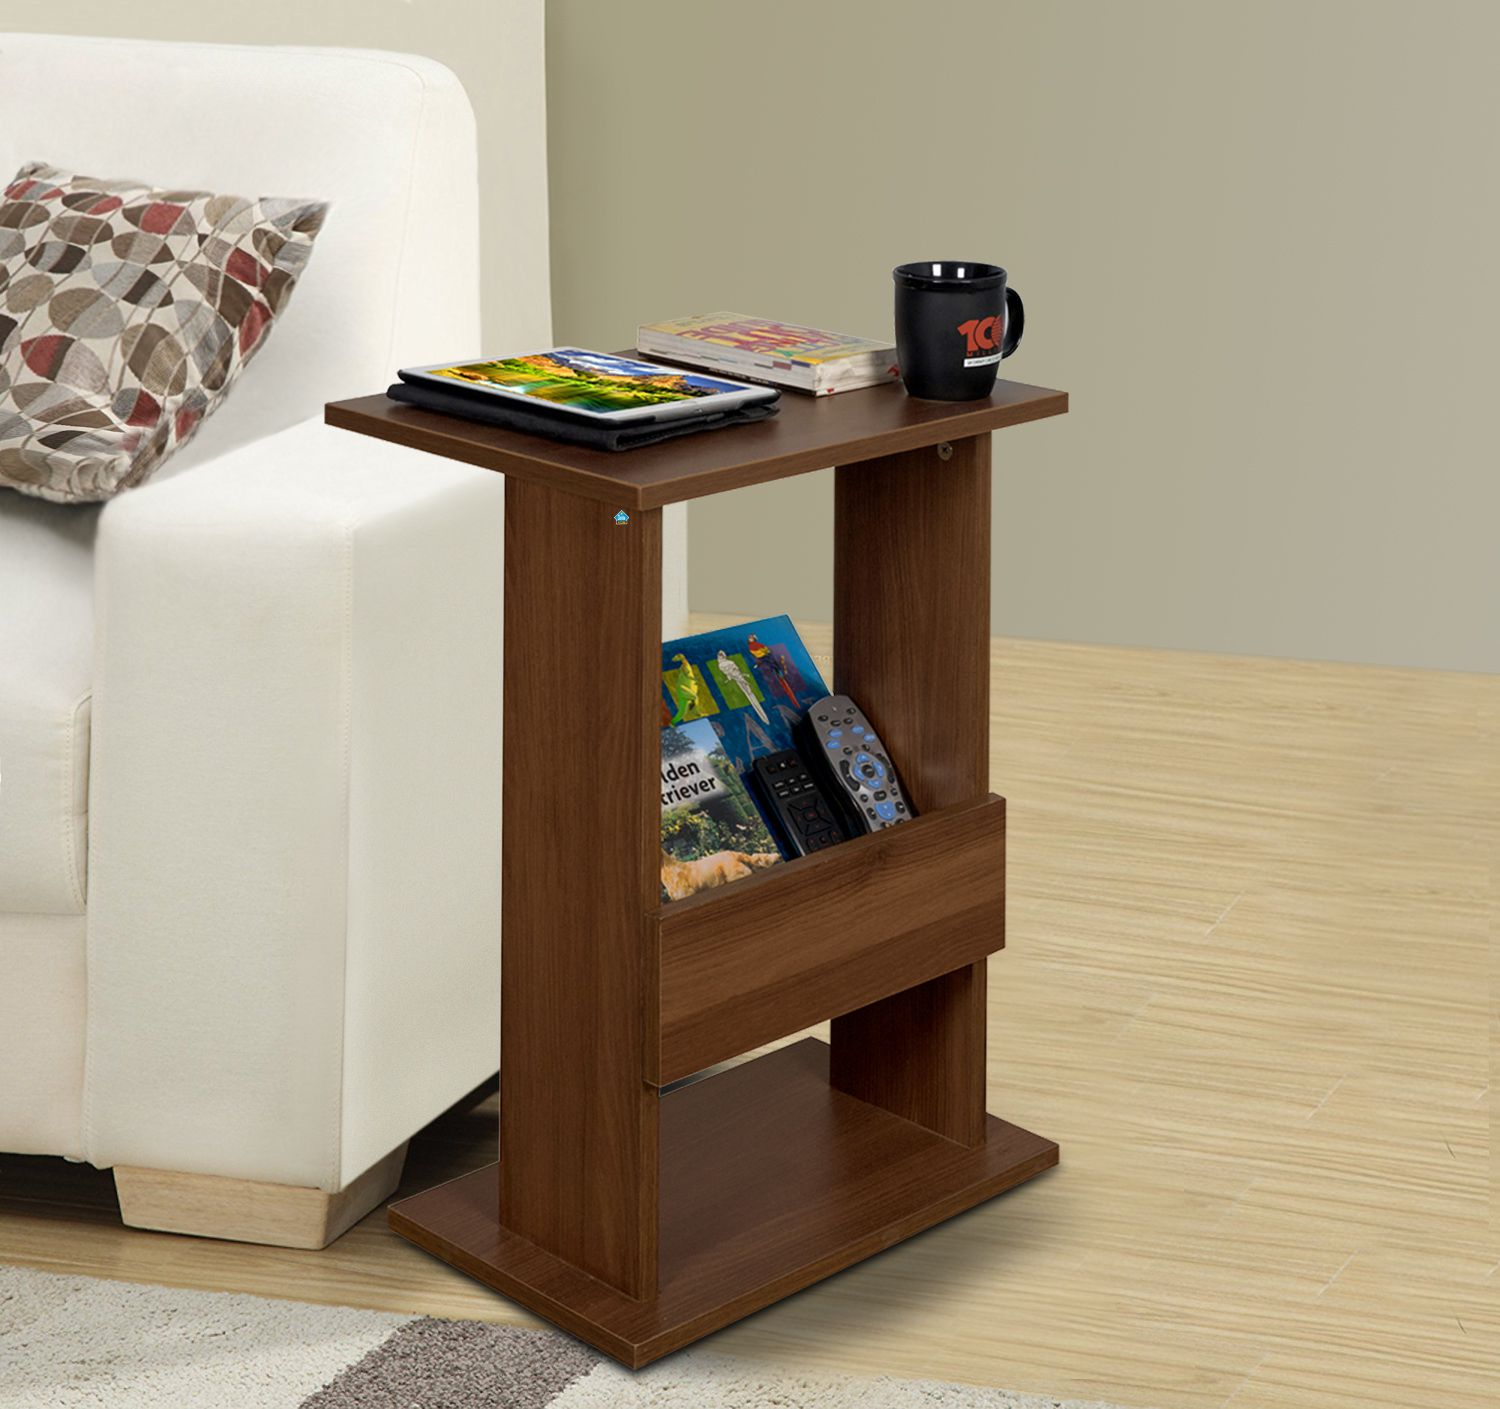 Delite Kom Engineered Wood Bed Side Table Buy Delite Kom